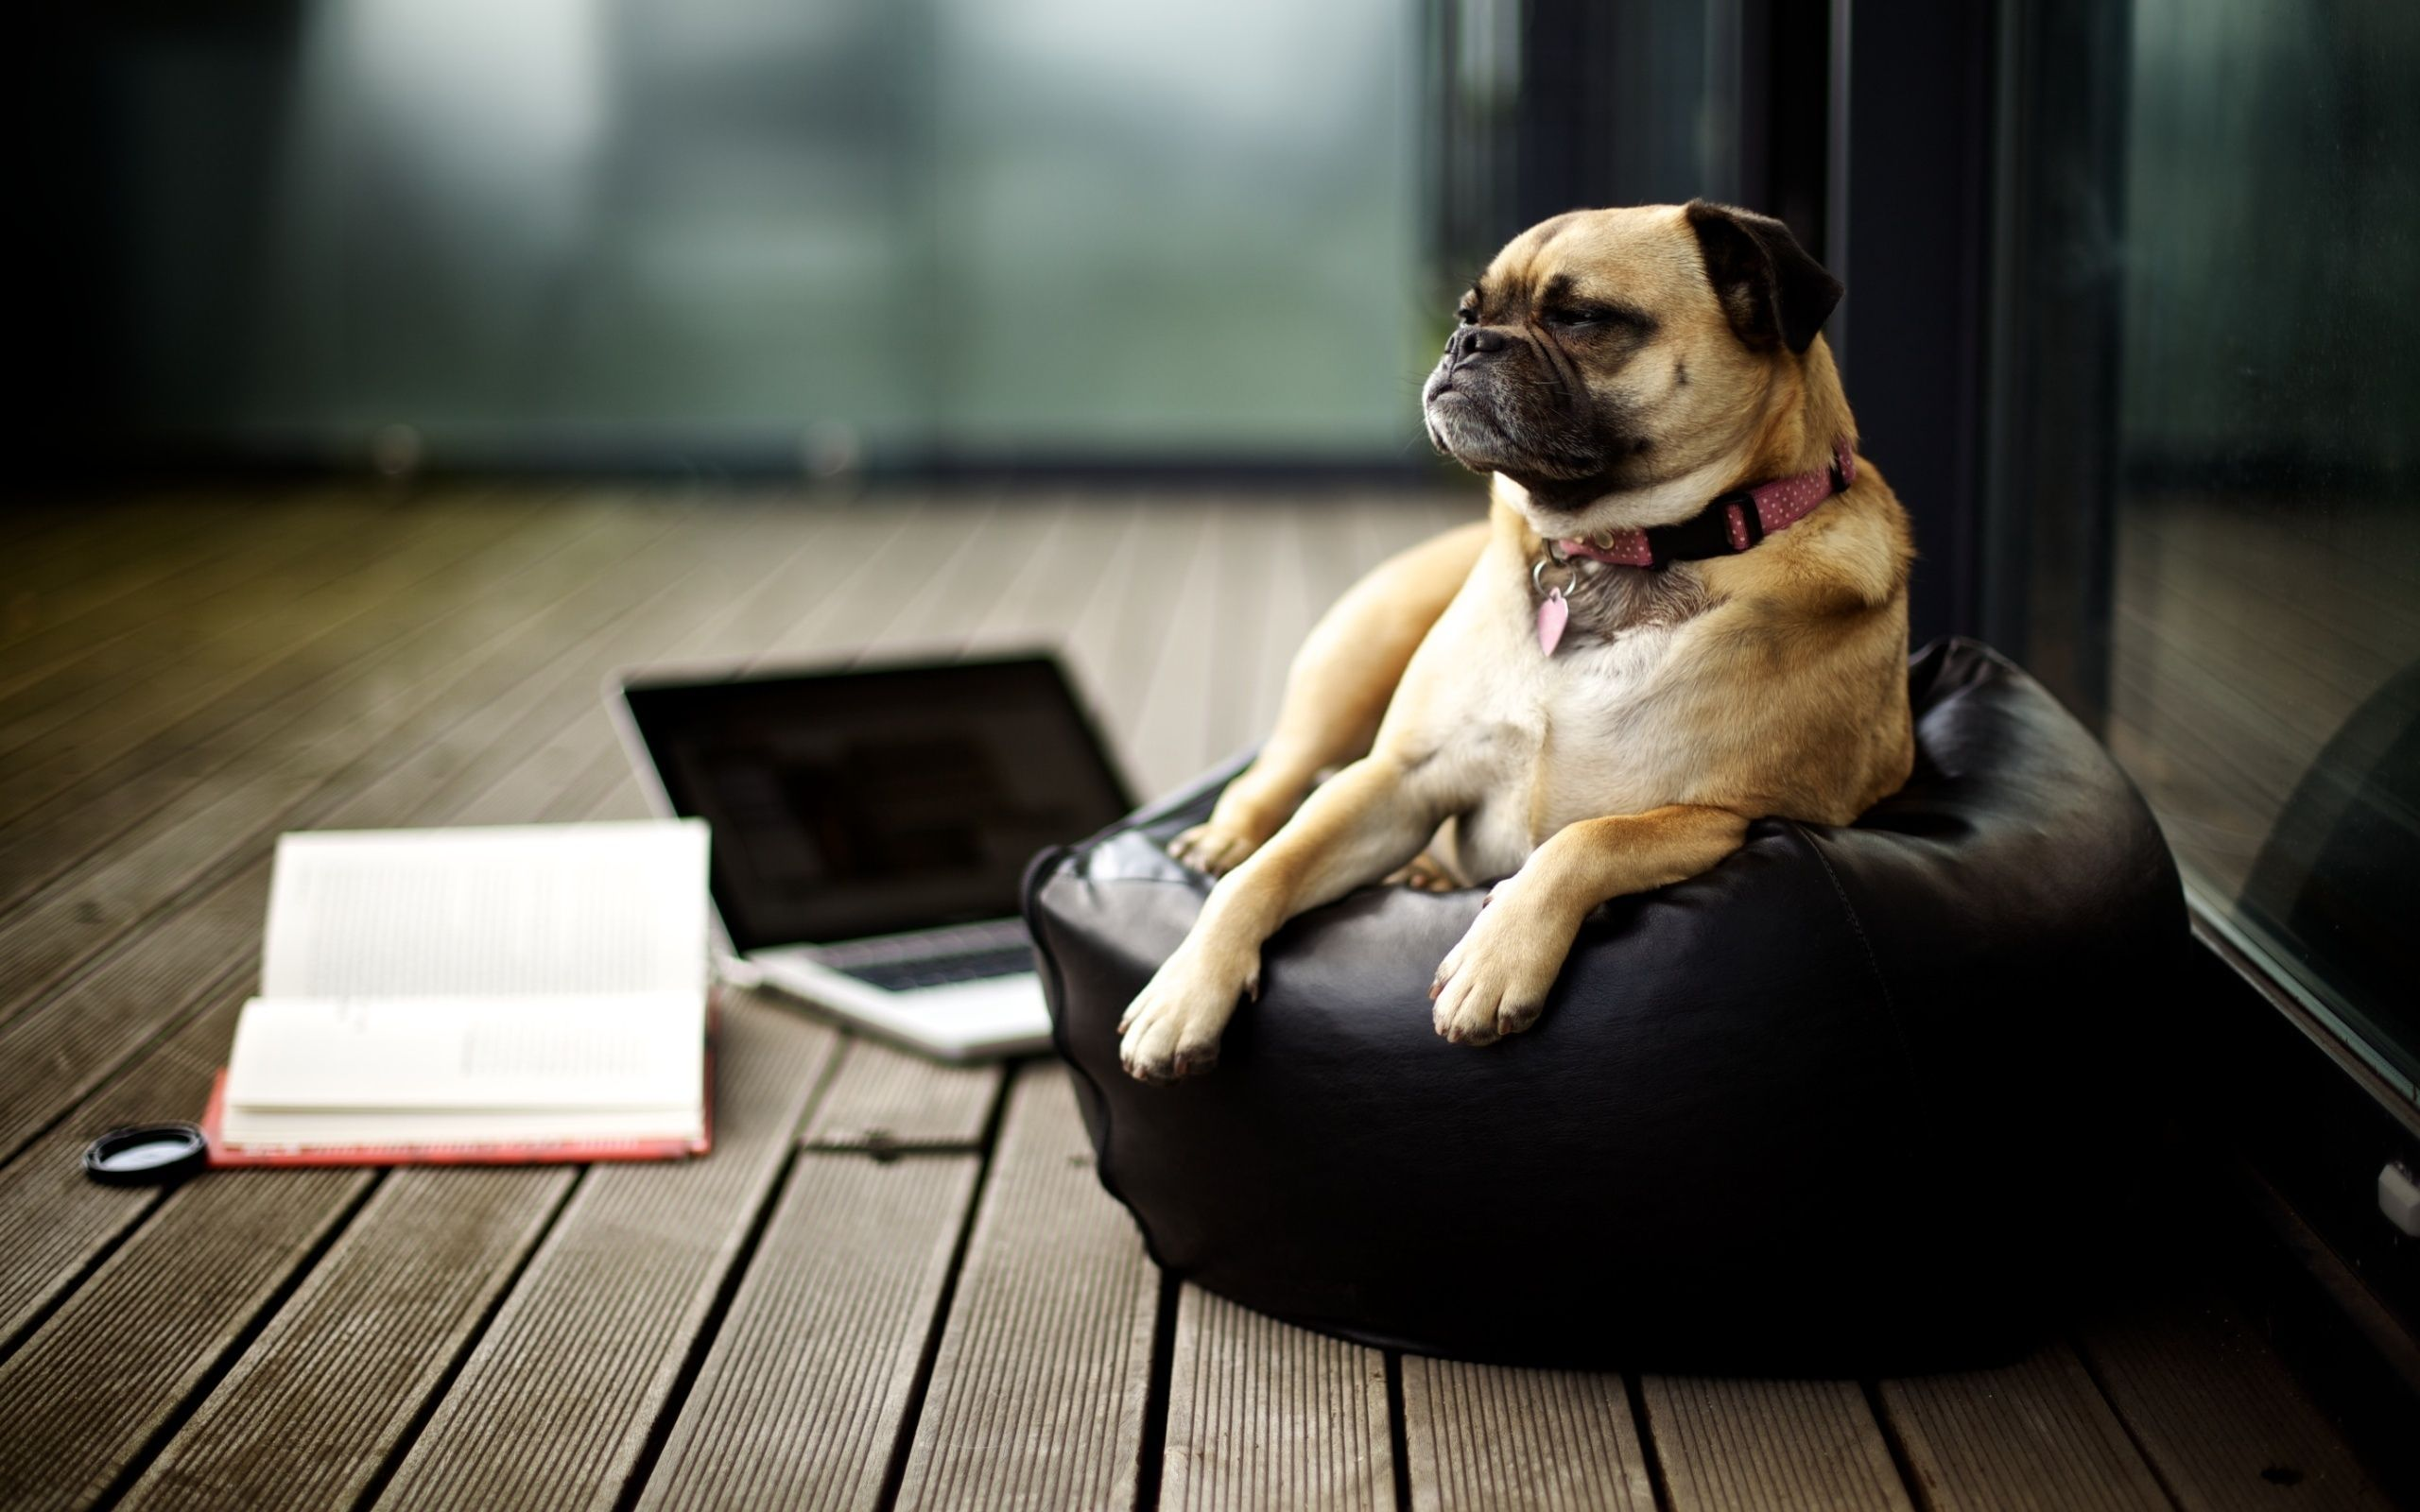 Working From Home Pug Wallpaper Cute Dogs Pug Dog